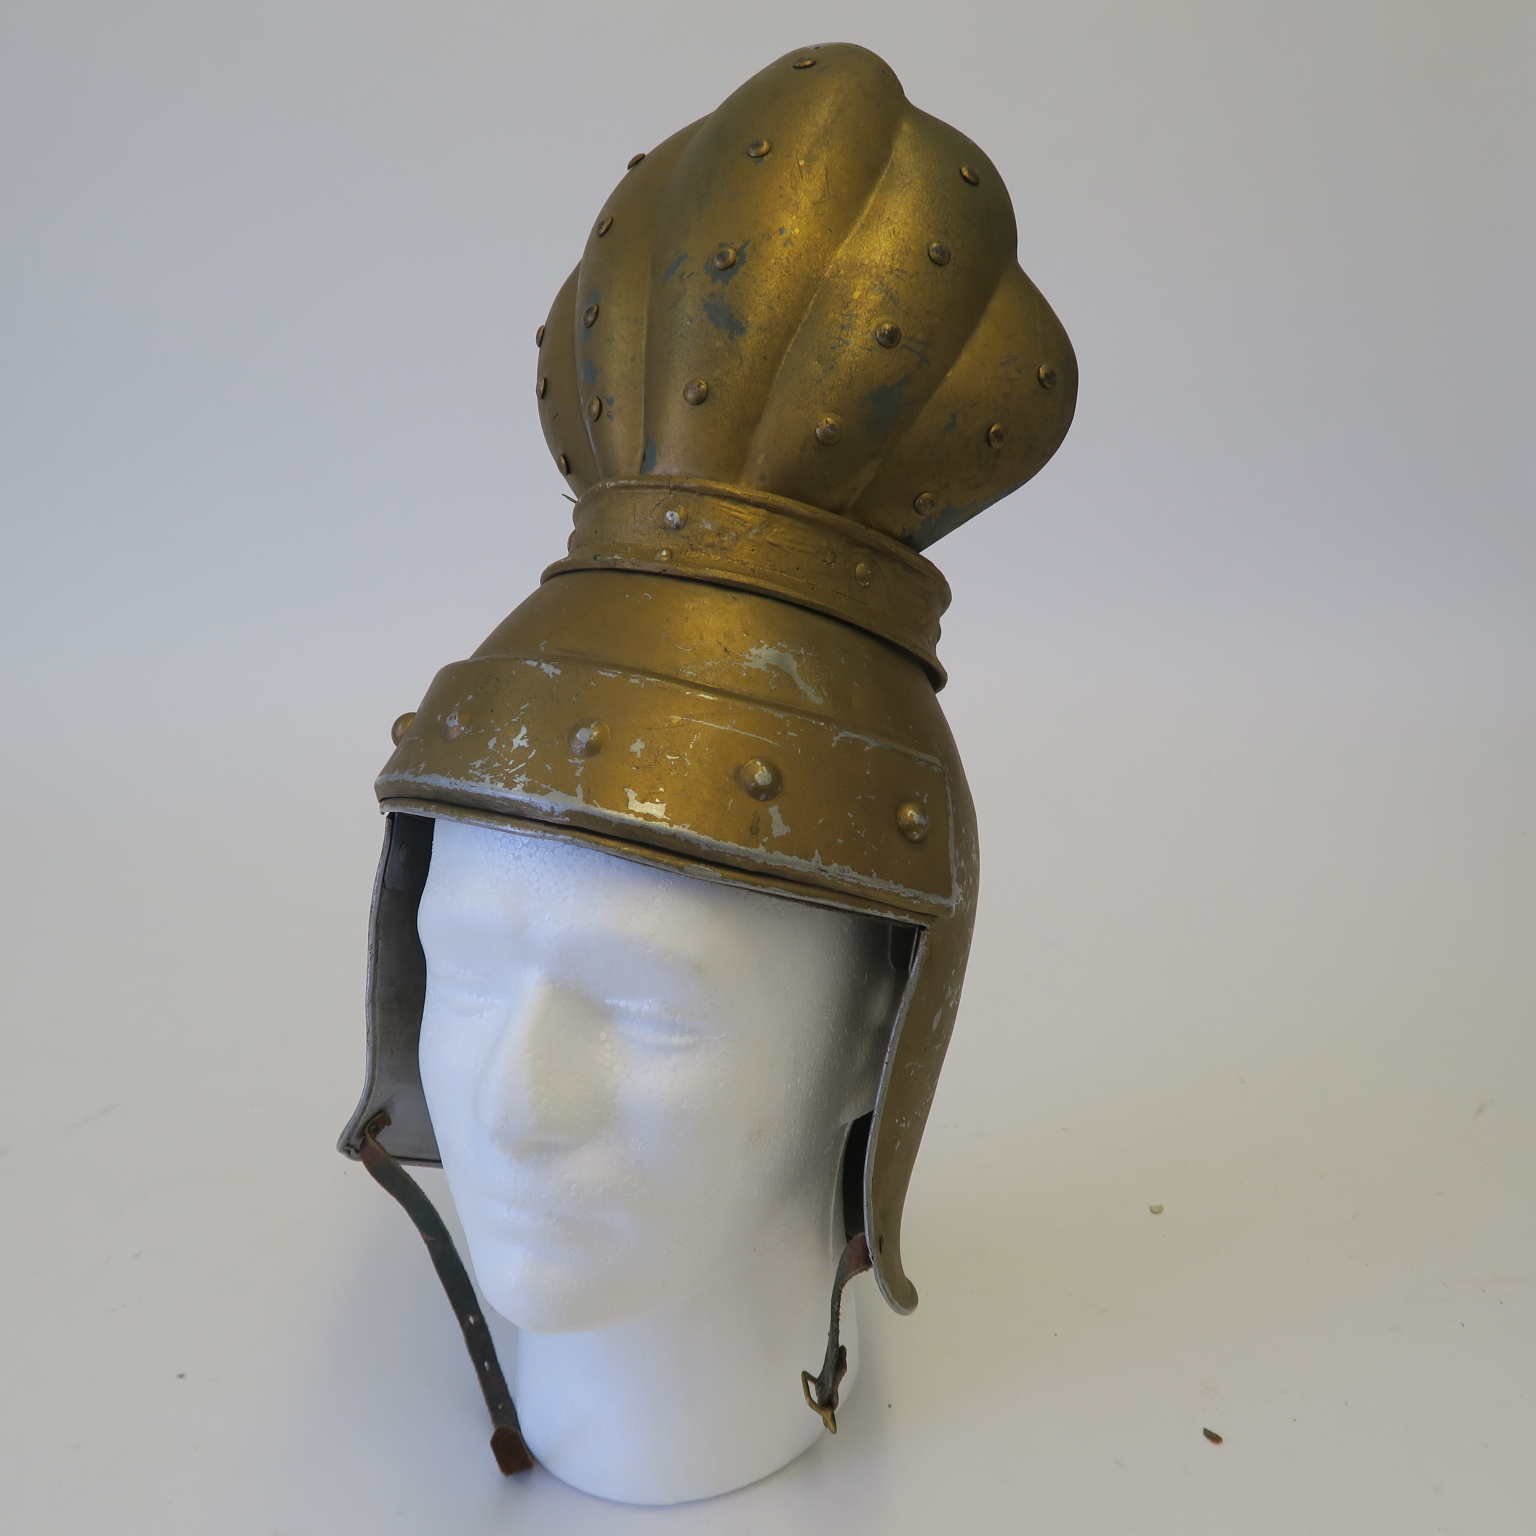 Lot 41 - Flash Gordon 1930s TV serial gold helmet used in many productions including Robin Hood and The